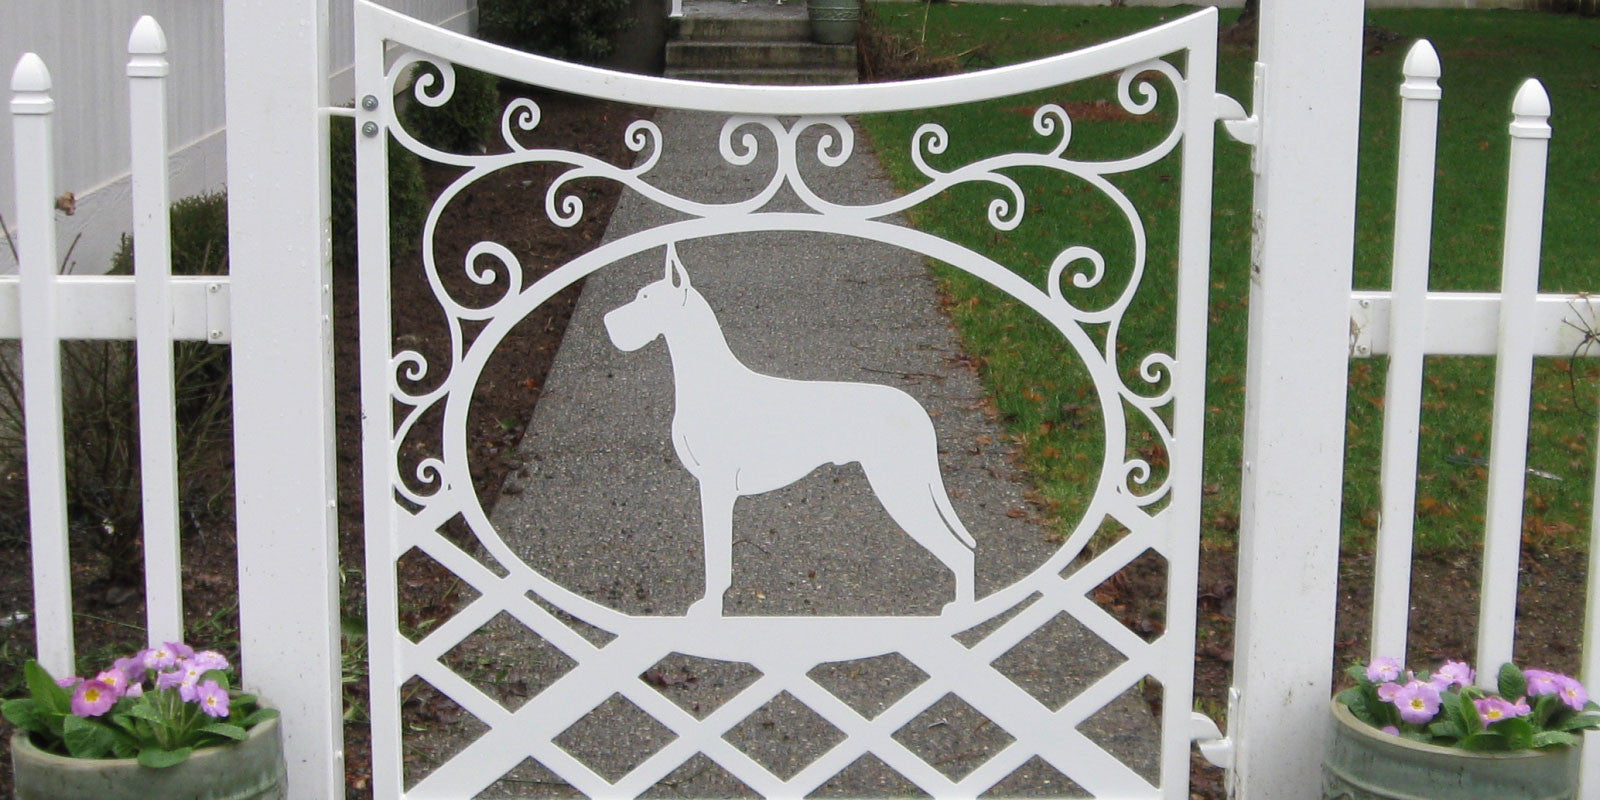 Specializing in Great Dane Themed Items